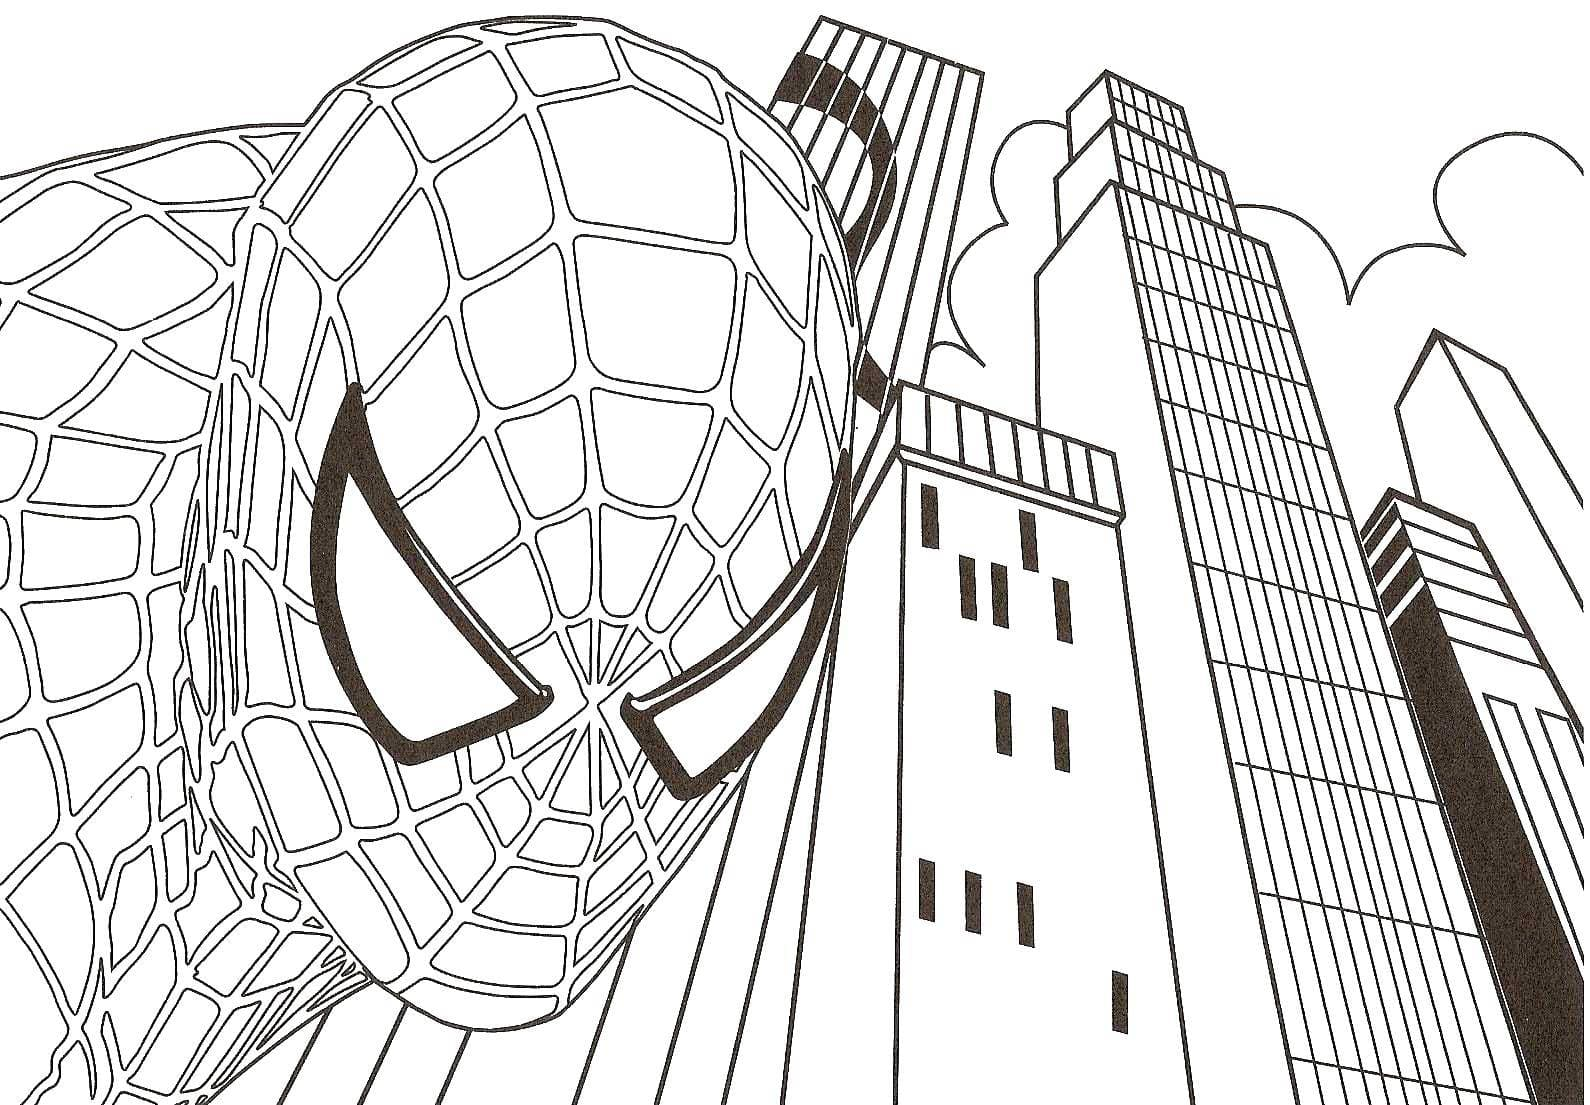 Spider Man Homecoming Coloring Pages Spiderman Coloring Pages Only ... | 1105x1590